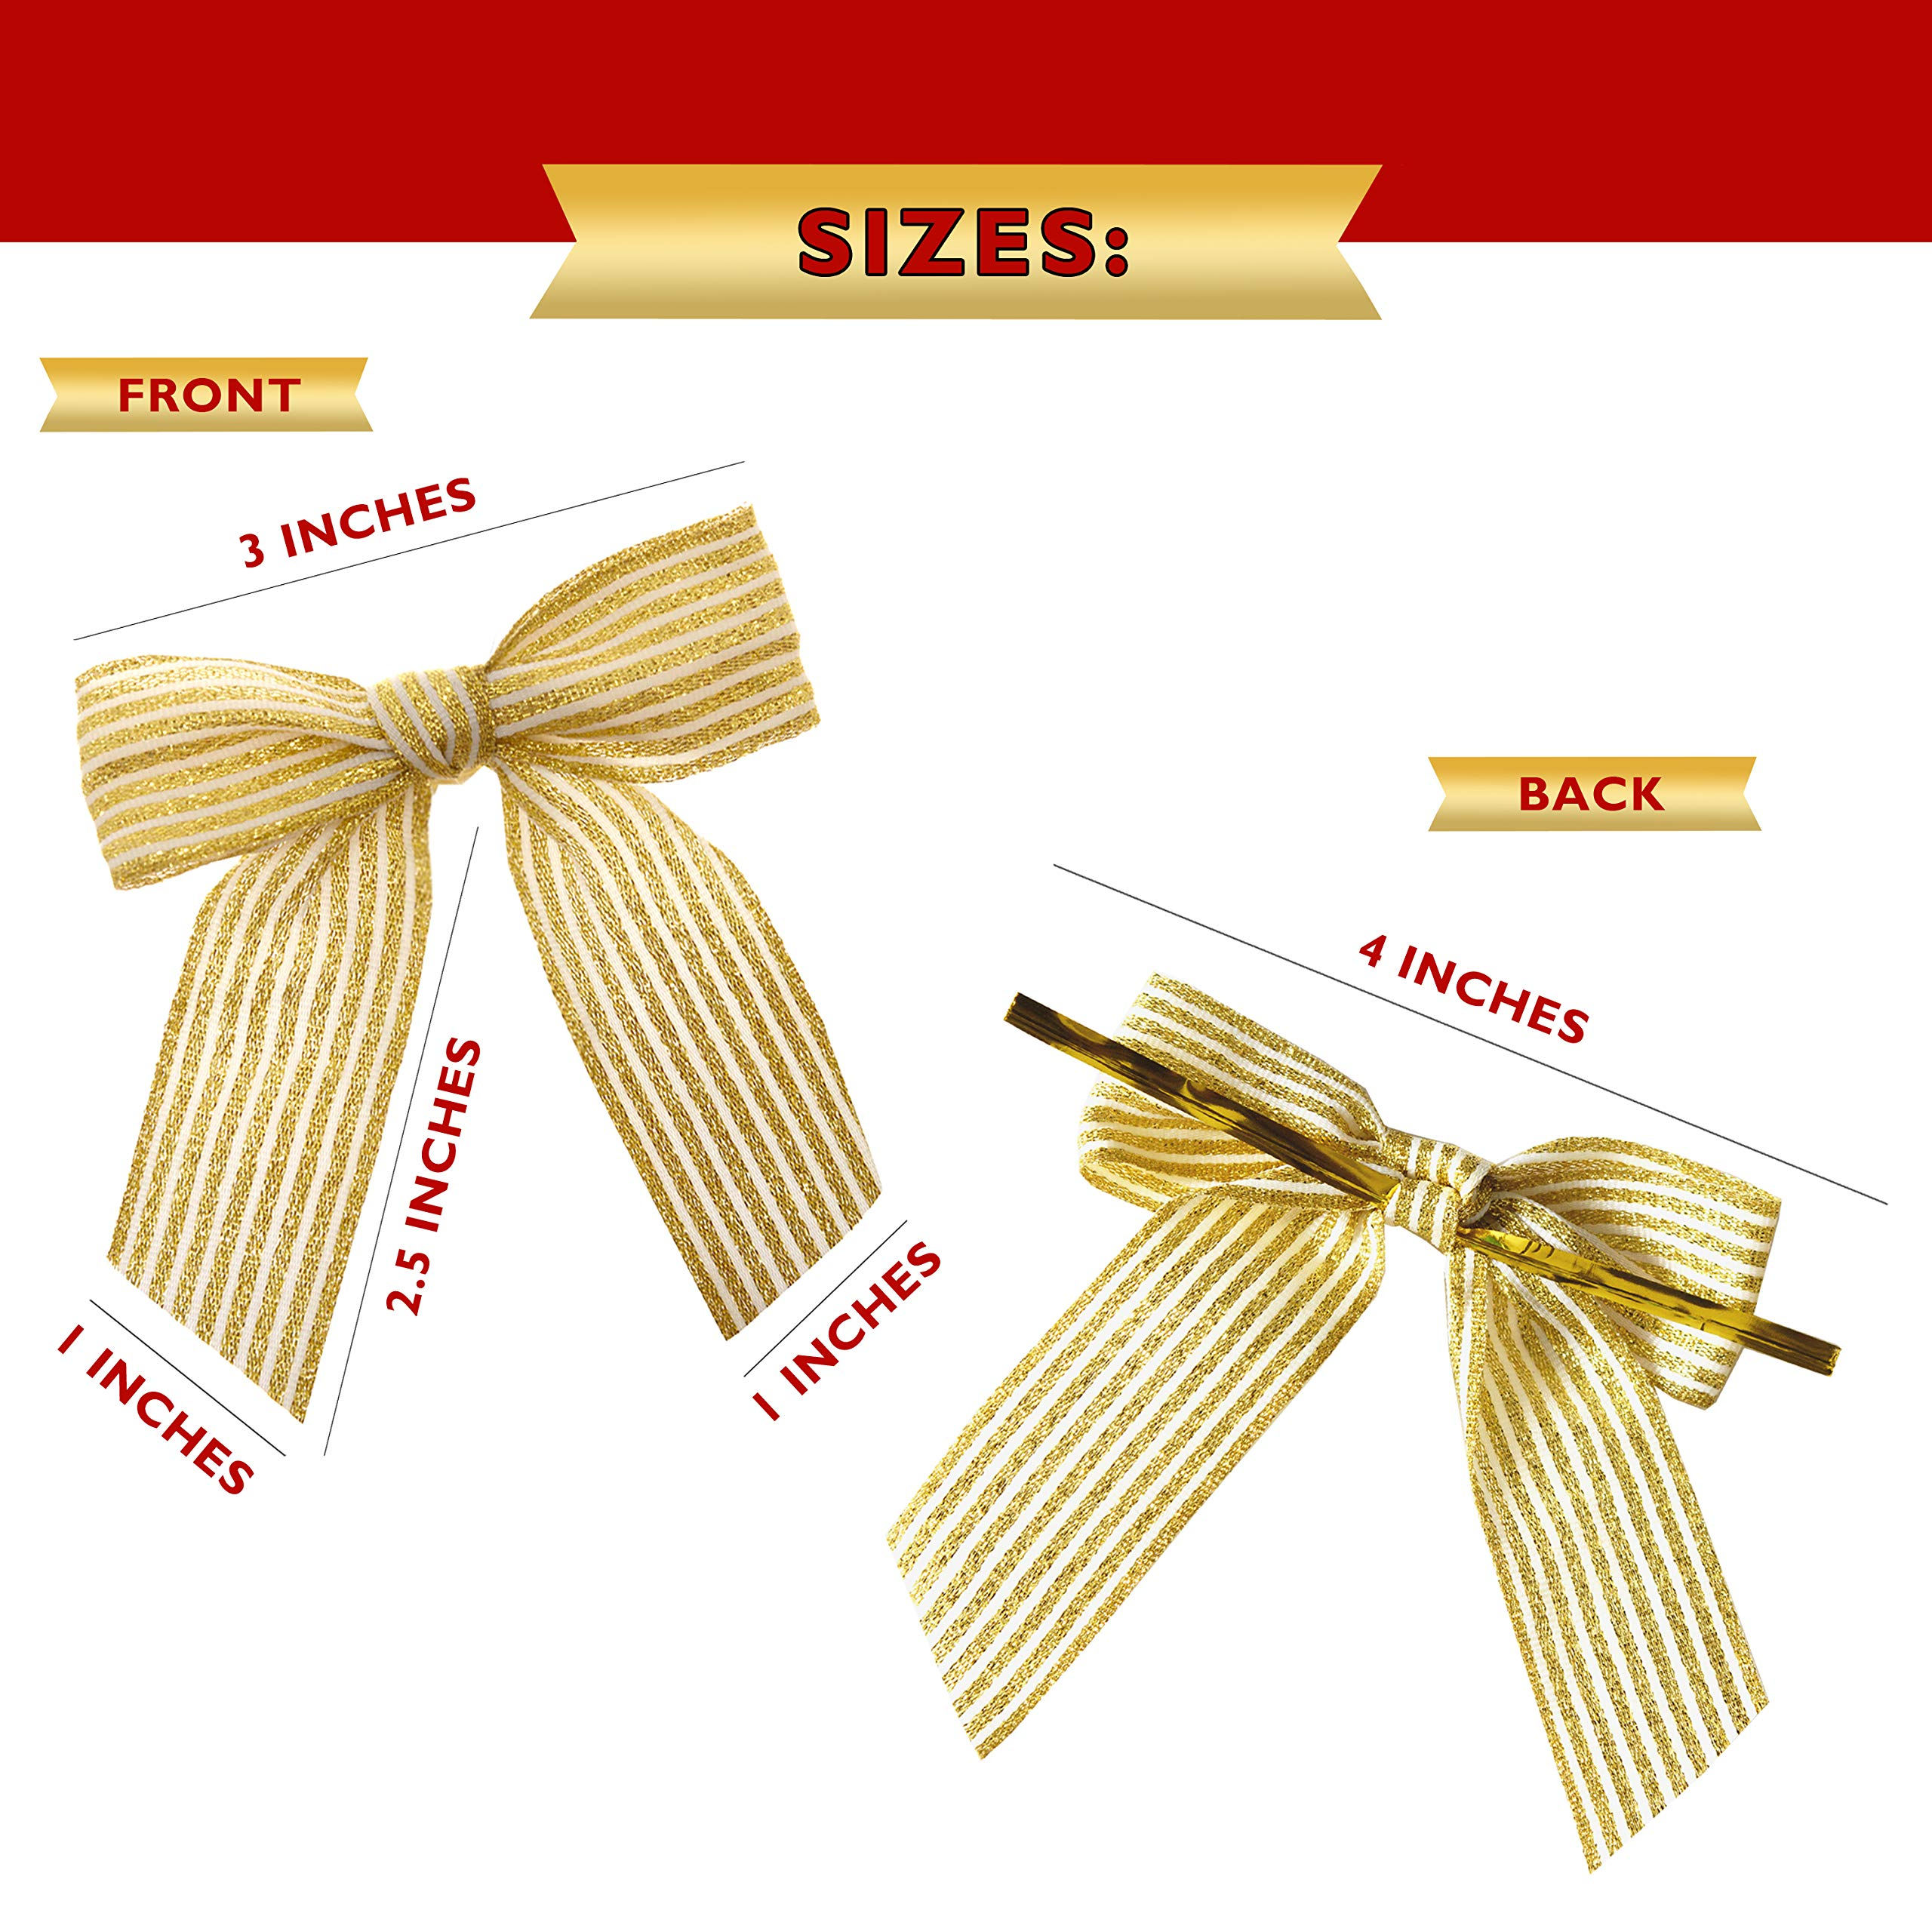 VANILILA Ribbon Bow Decoration Twist On Gift Tag Embellishments, Bulk Set of 20 - Handmade White & Gold Bows for DIY Wedding Display Card, Hair Clips, Headband, Decor, Arts & Crafts